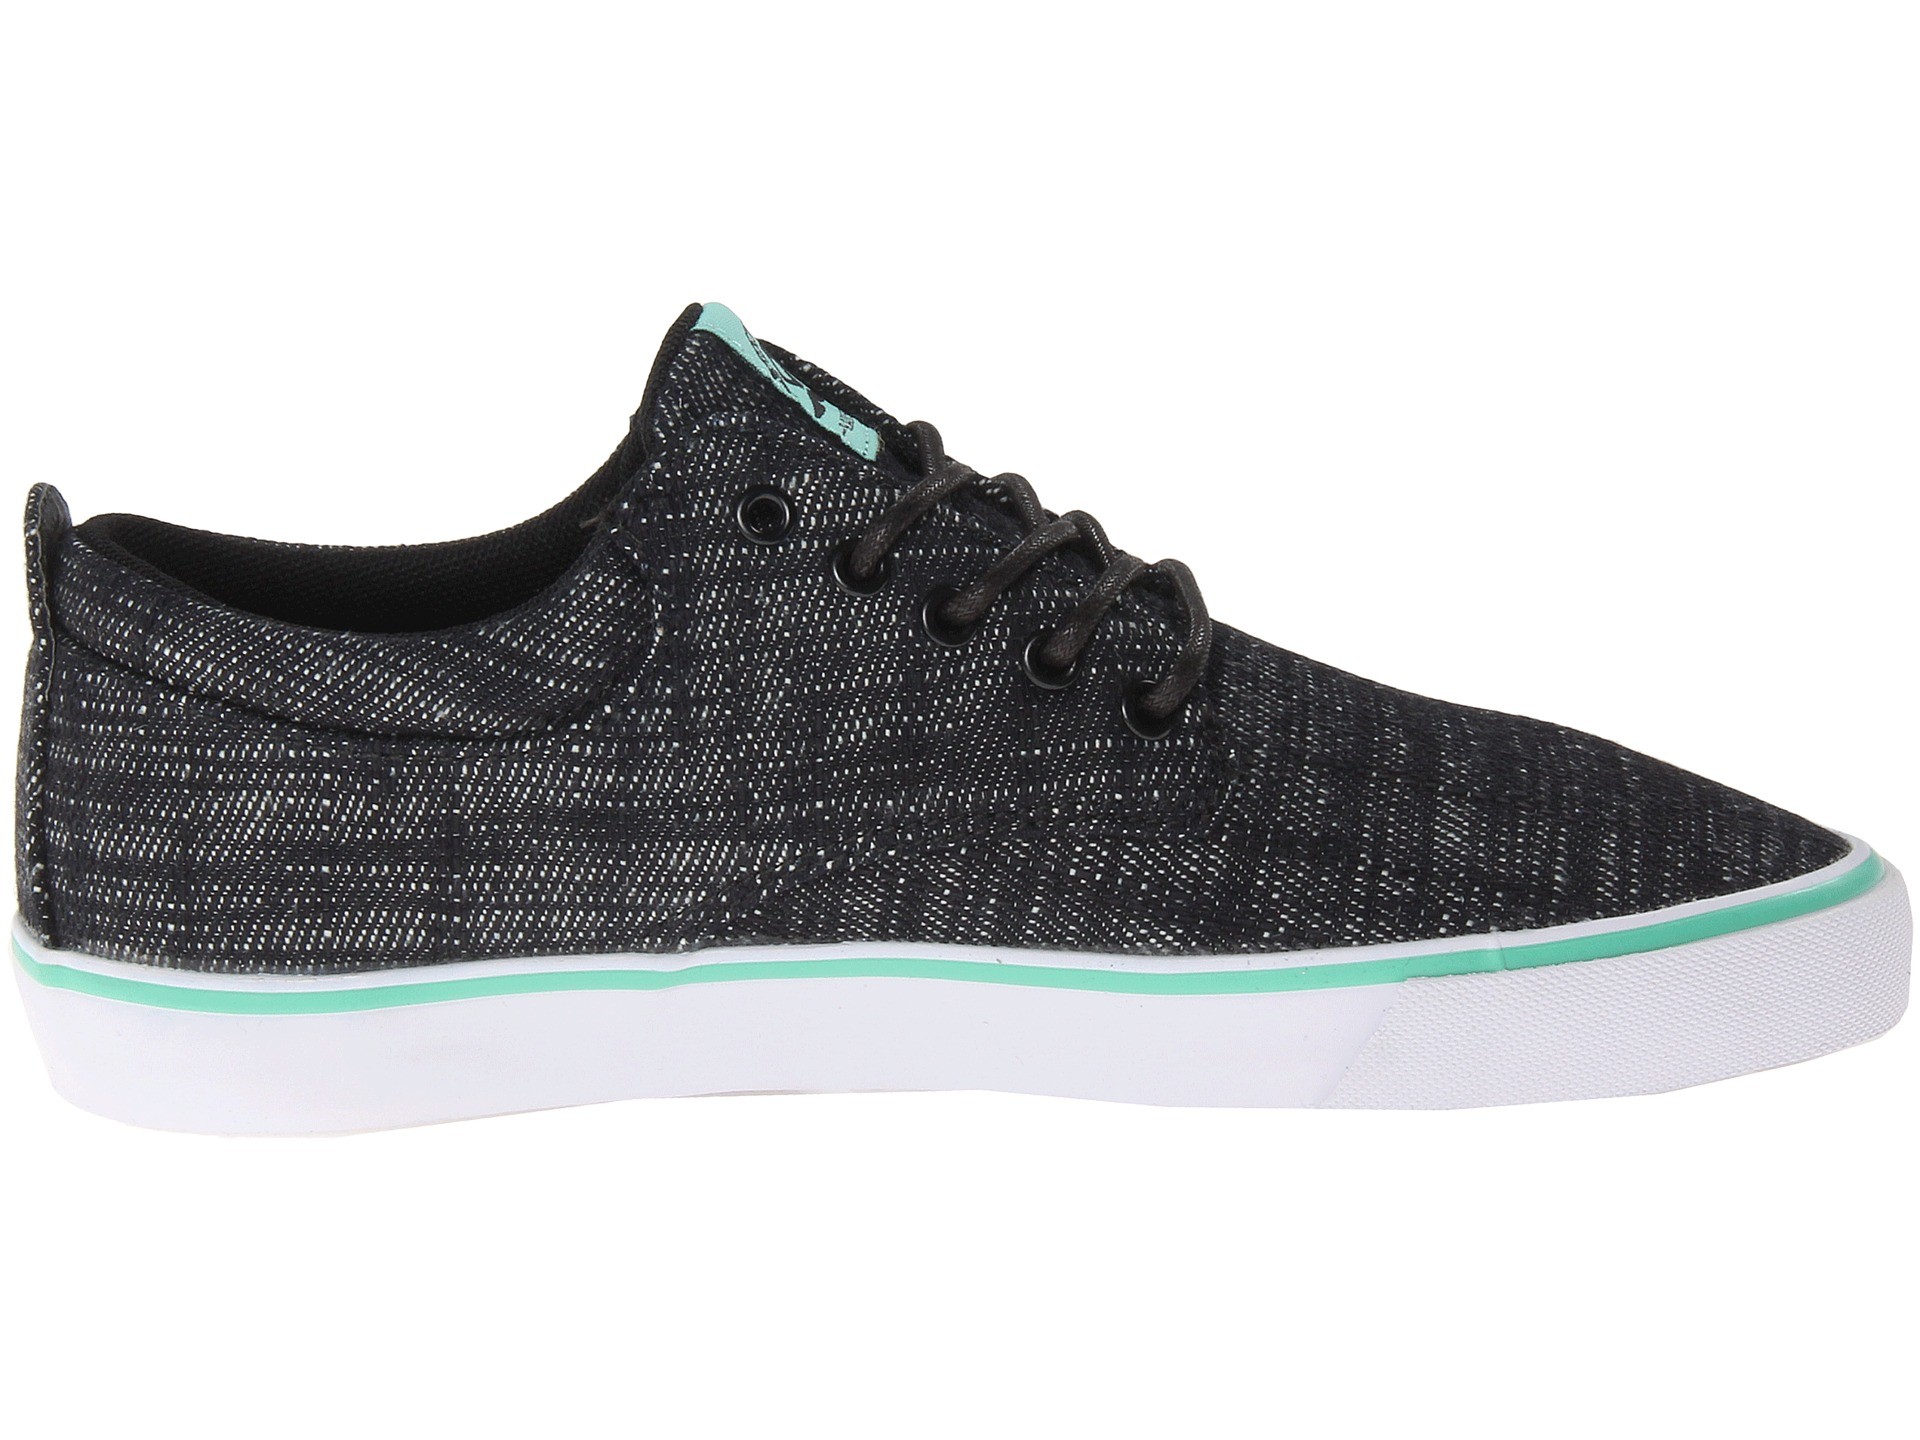 radii footwear the shipped free at zappos